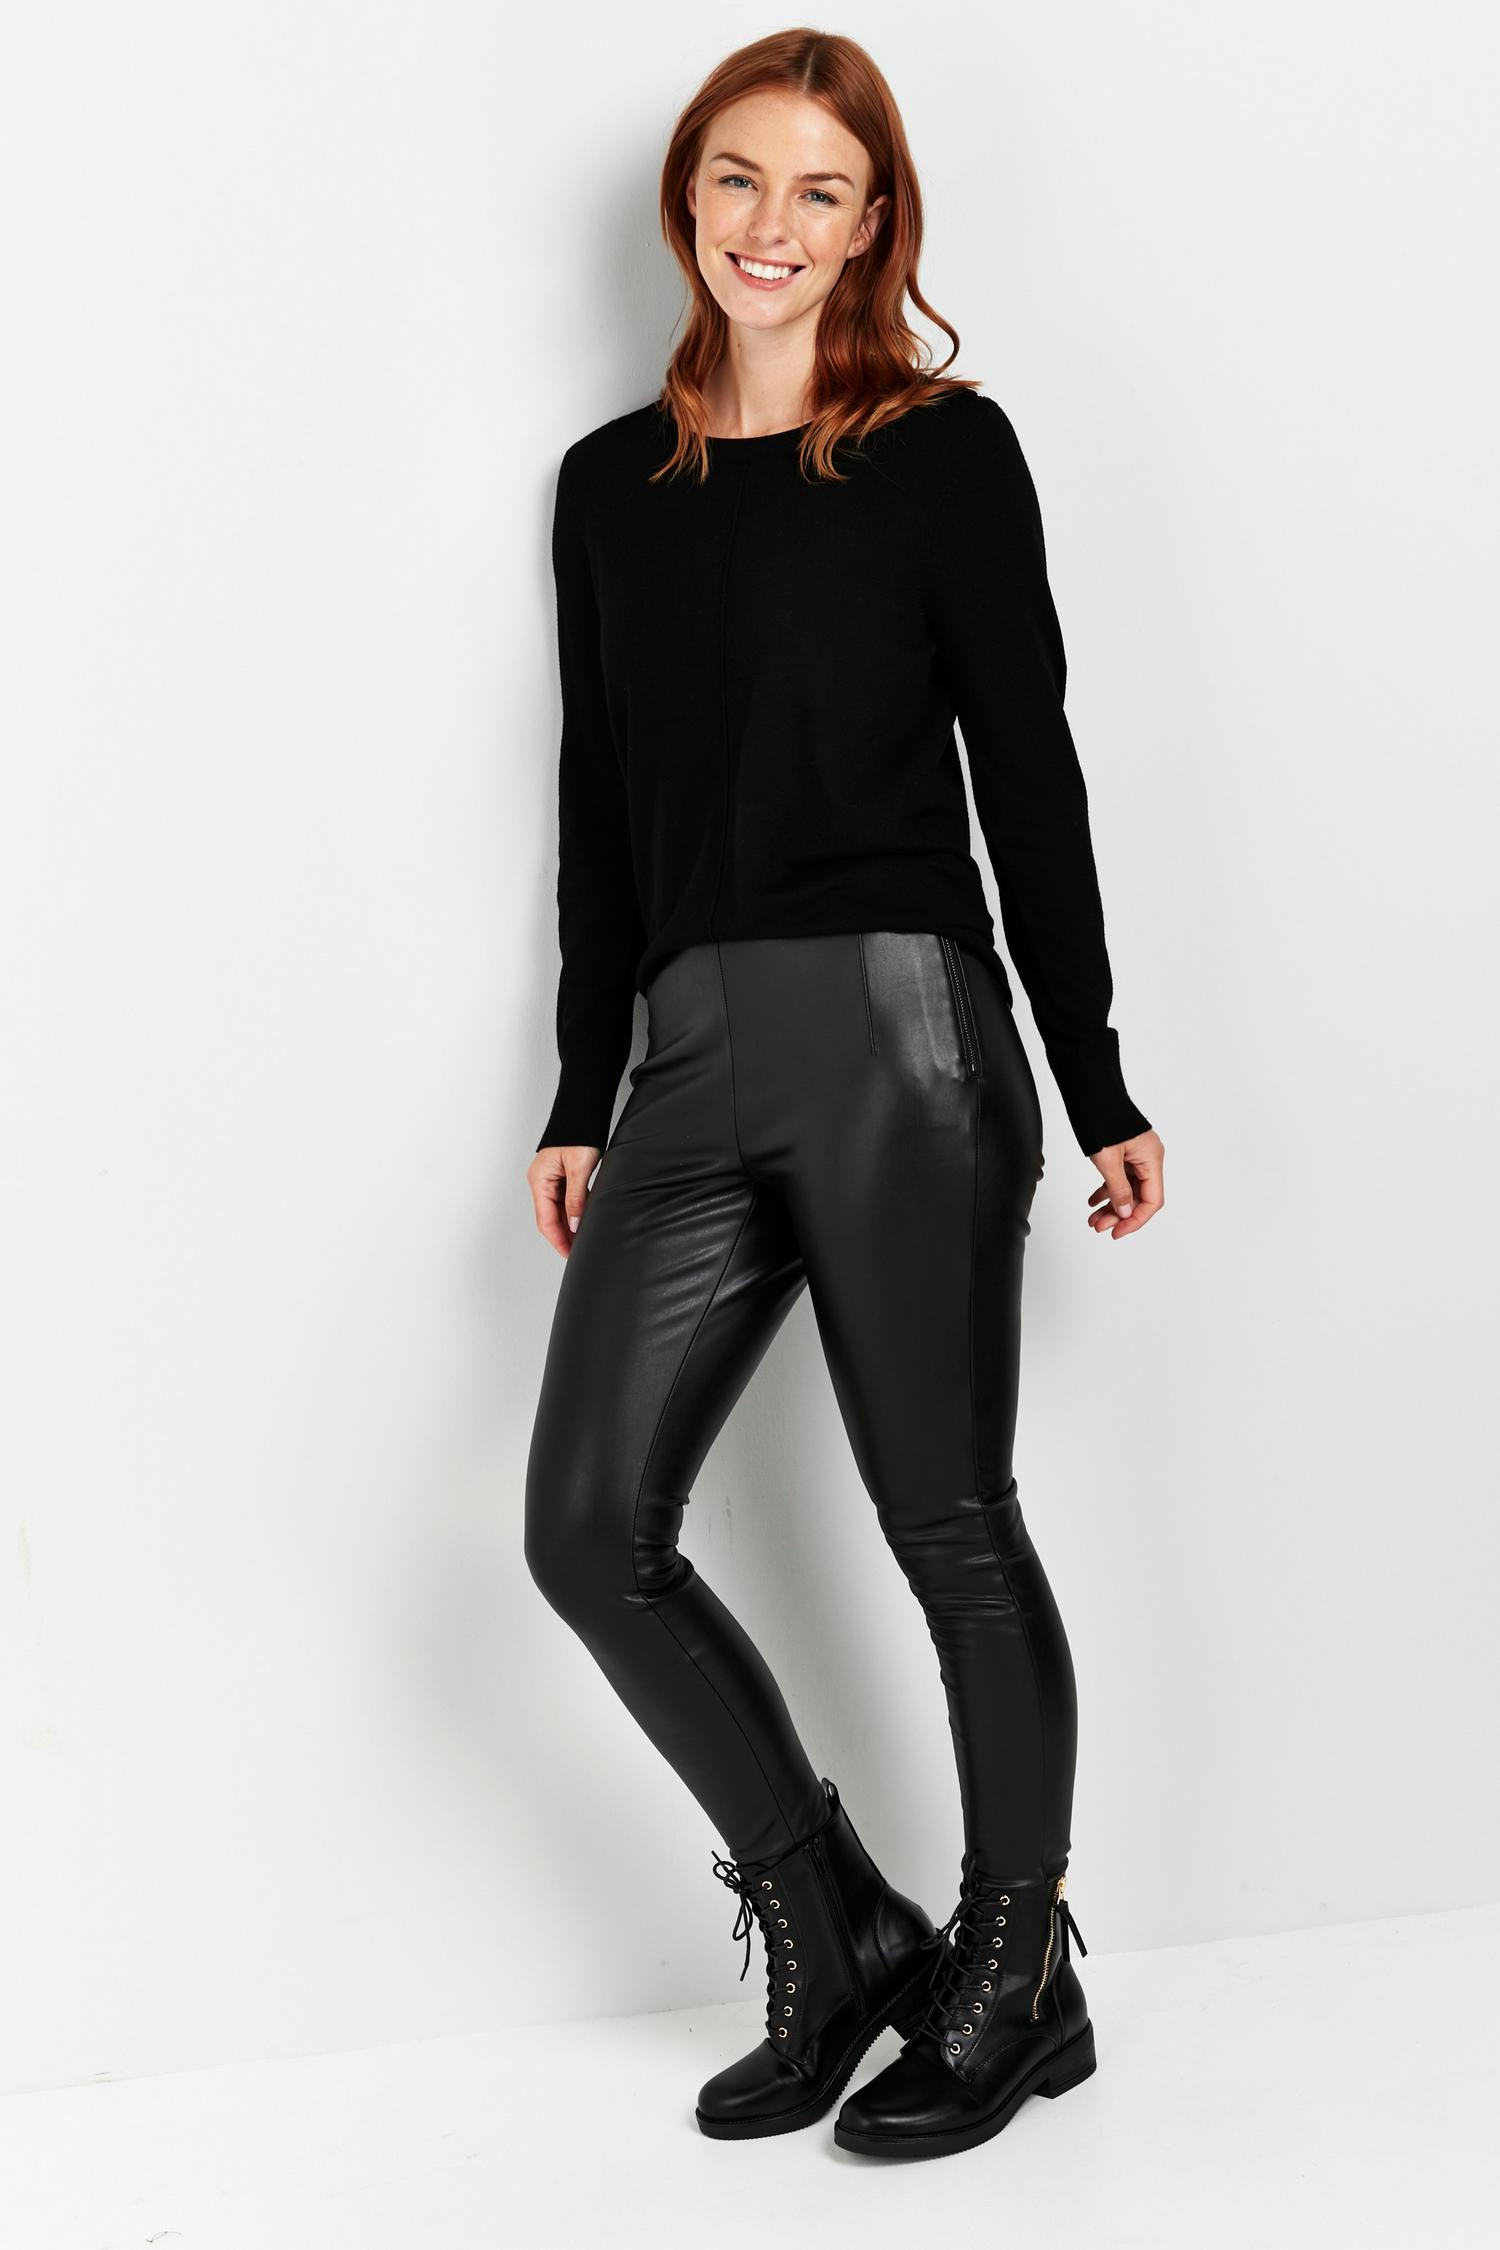 105 PETITE Black Faux Leather Legging image number 1